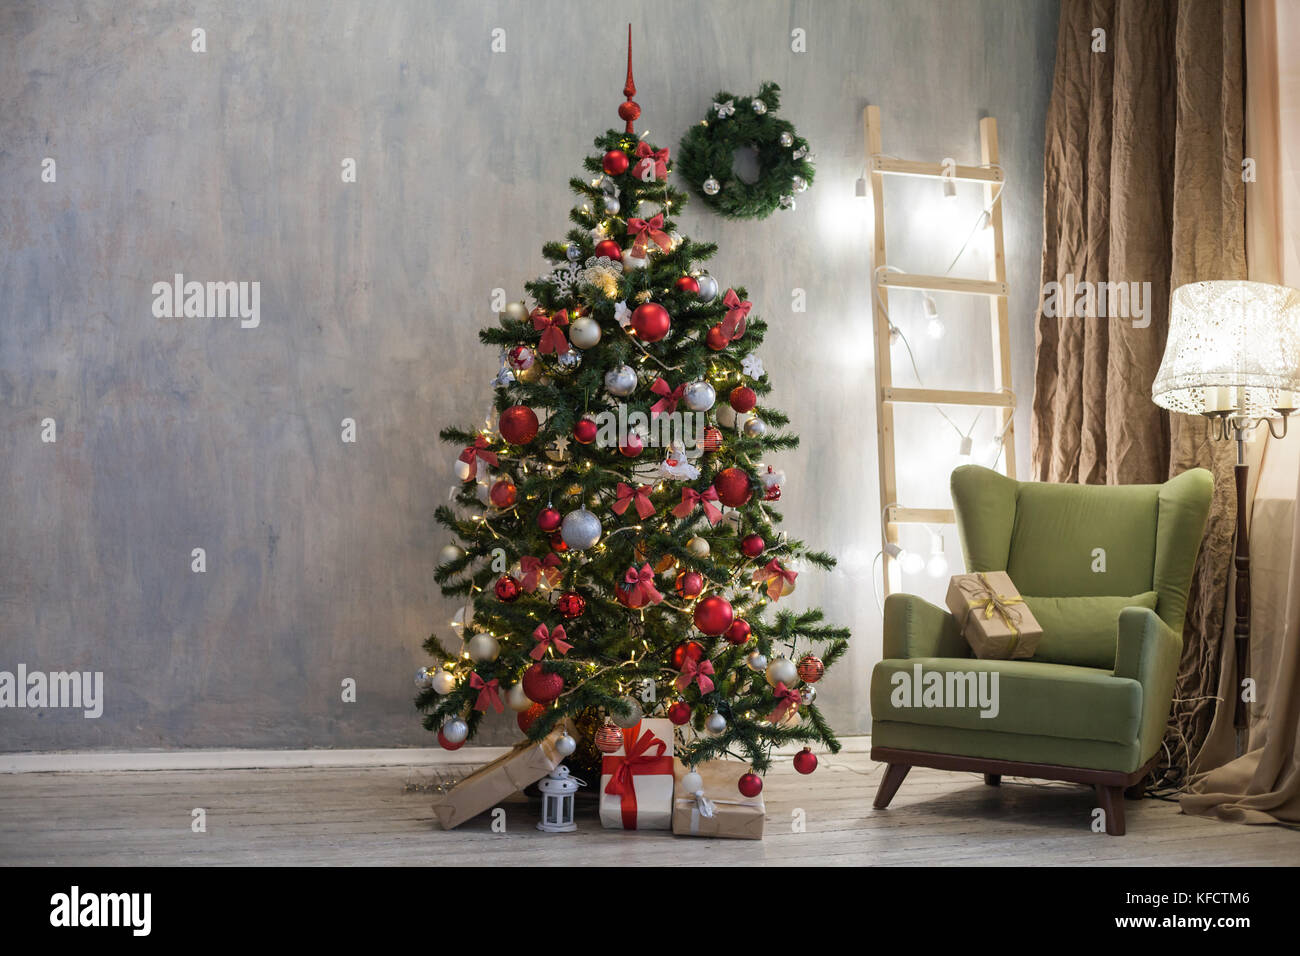 room with Christmas decorations Christmas tree gifts - Stock Image